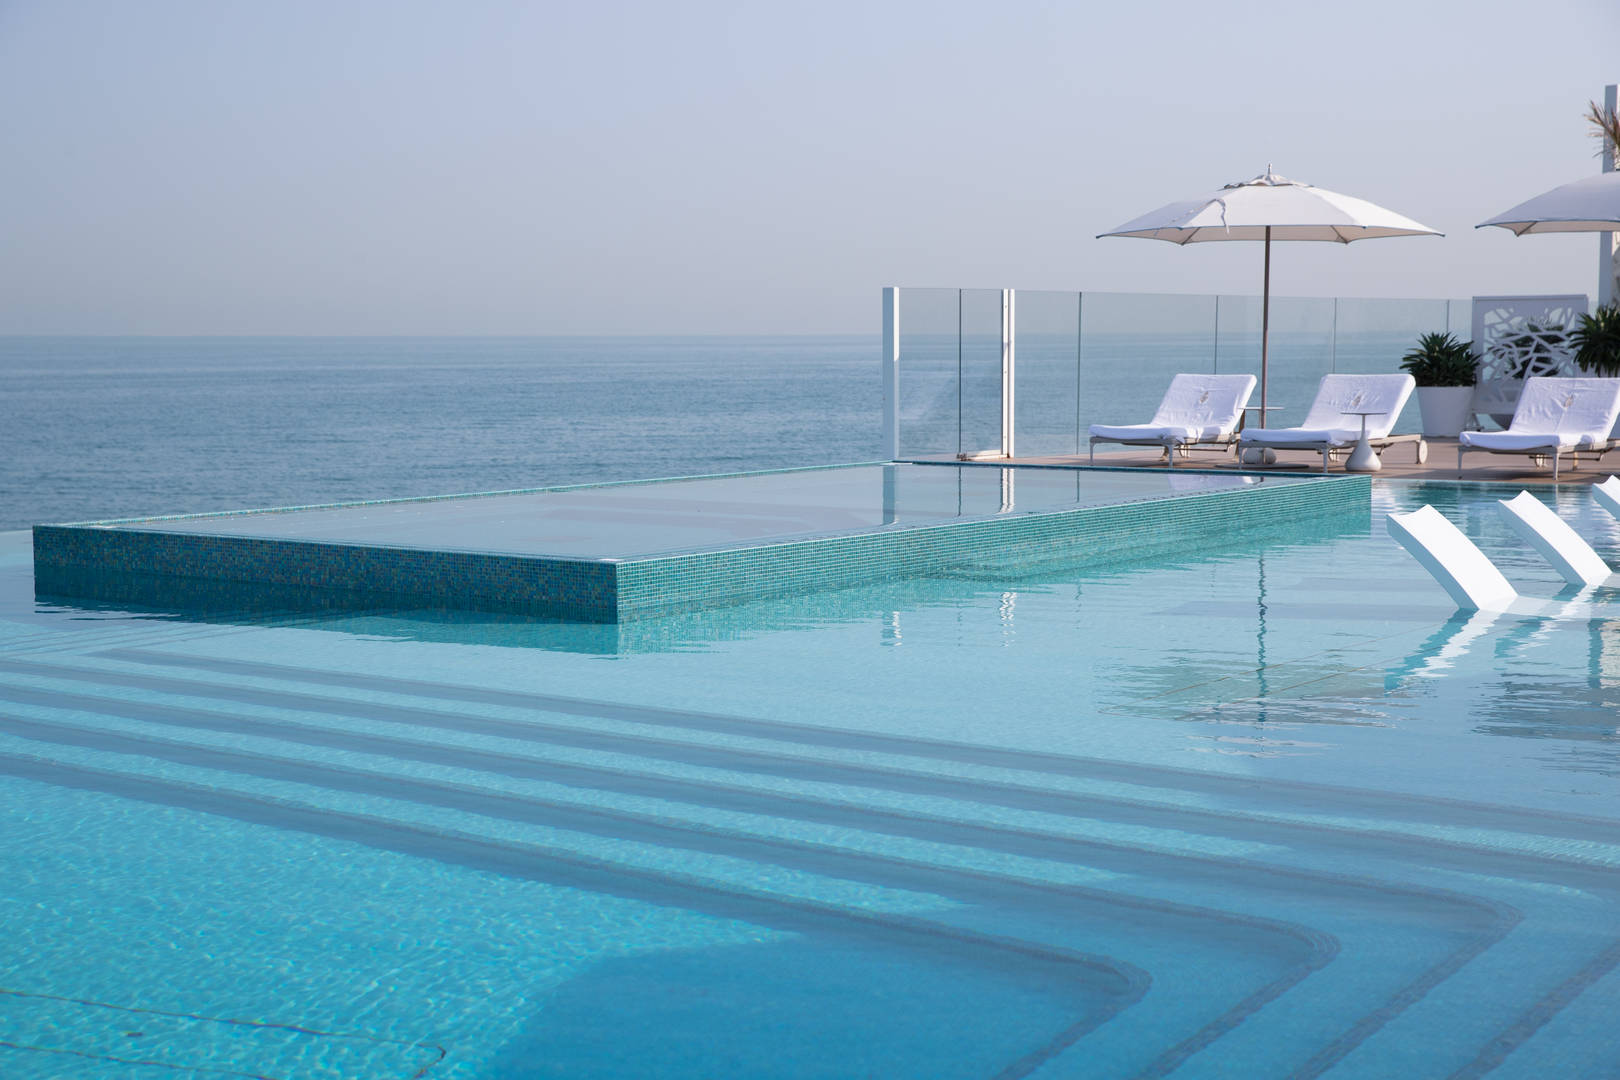 Jumeirah Burj Al Arab Terrace infiniti pool with view of the ocean